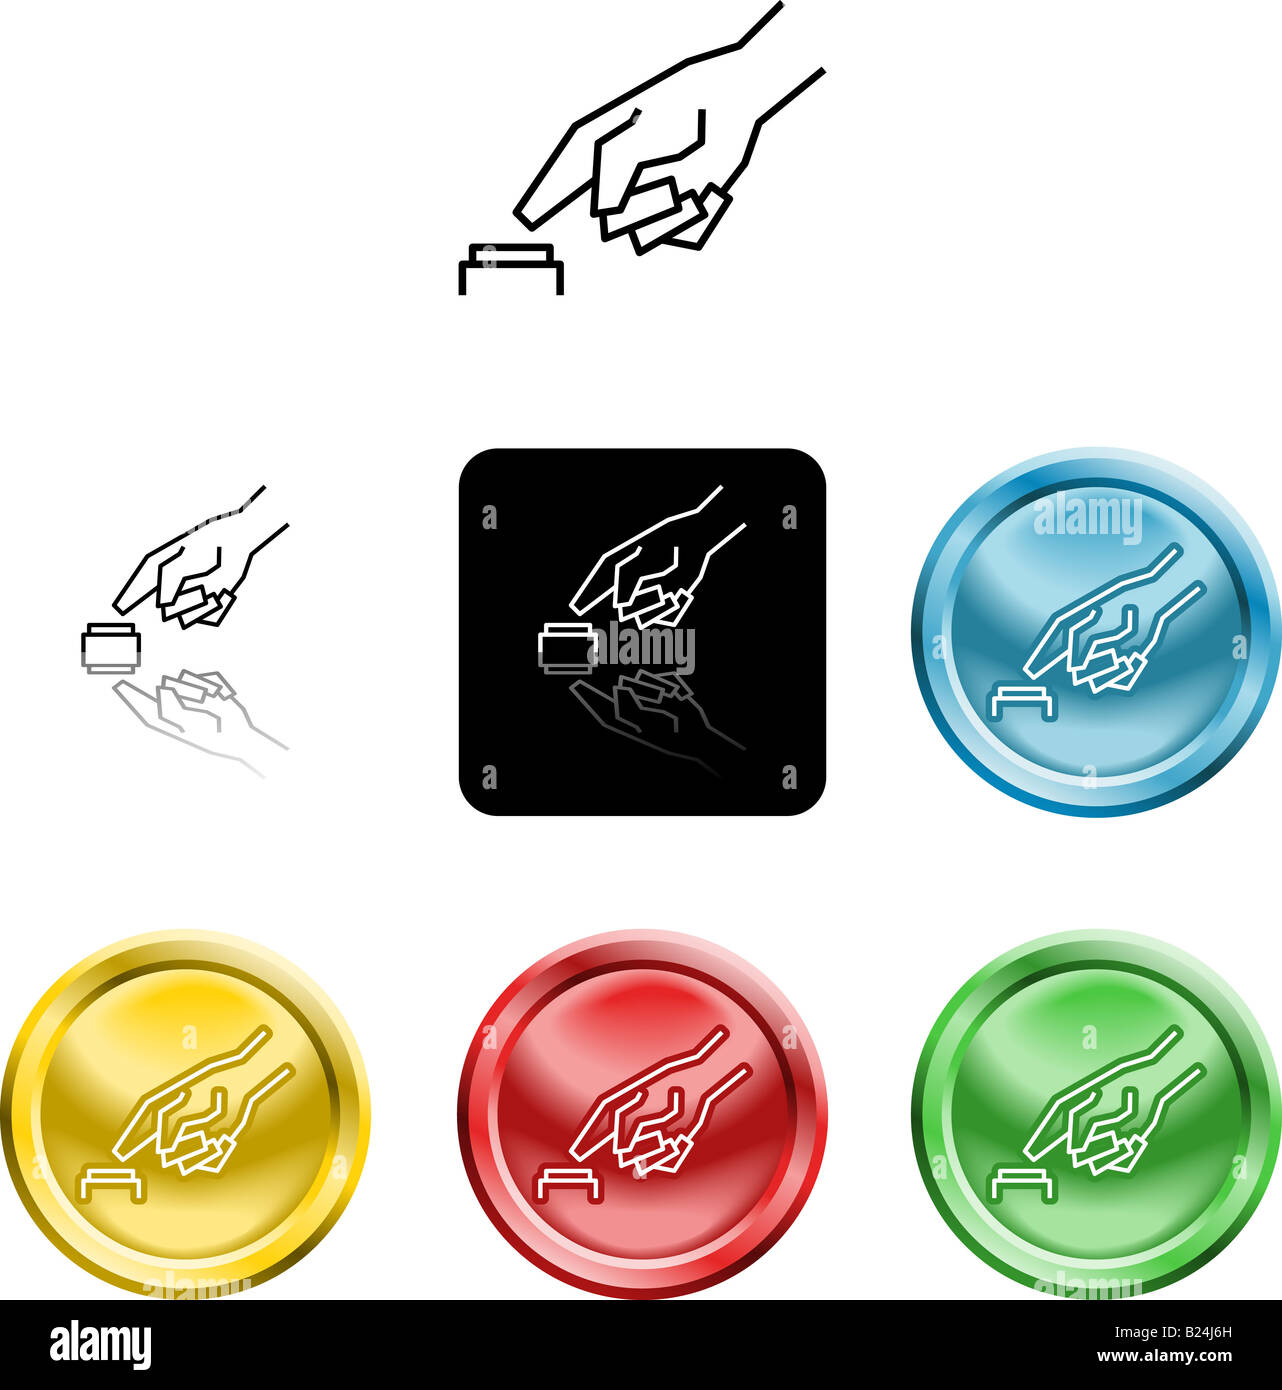 Several versions of an icon symbol of a stylised hand pressing a button - Stock Image